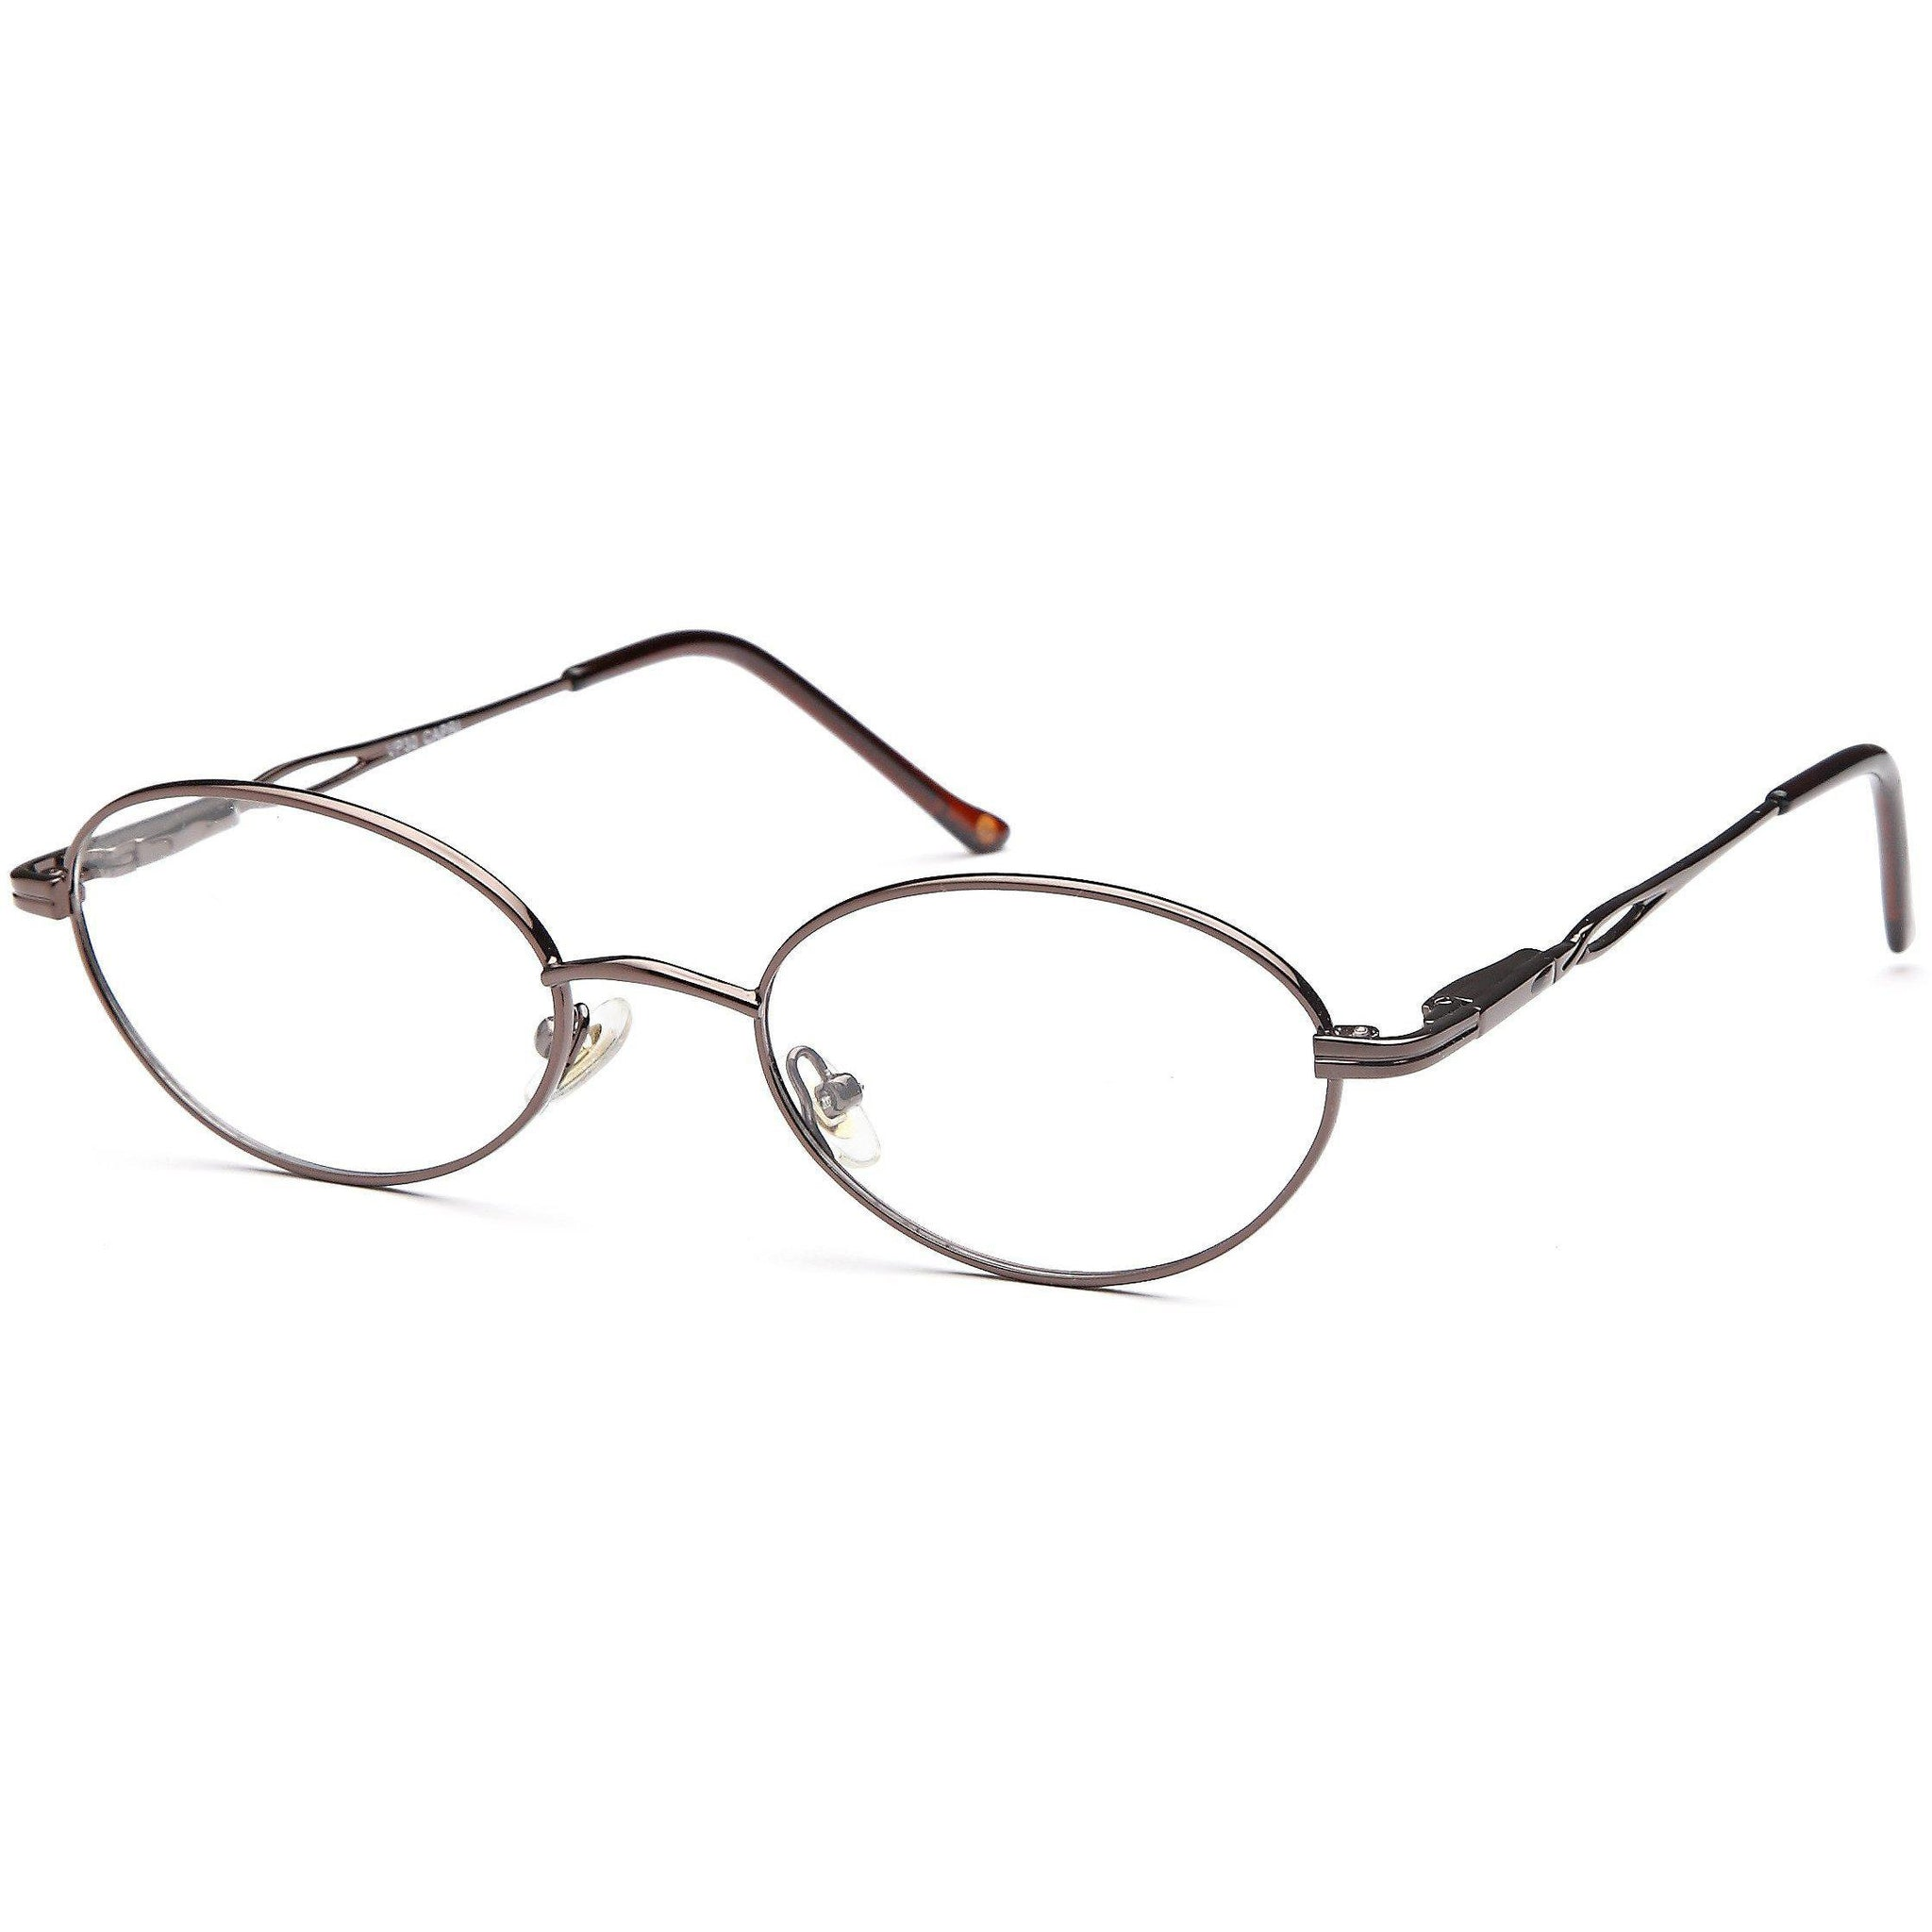 Classics Prescription Glasses VP 30 Frames